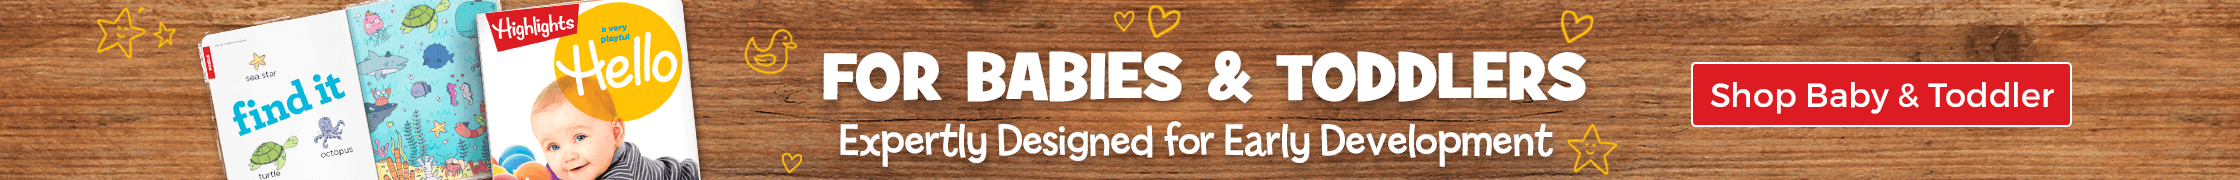 Shop 25+ expertly designed baby and toddler toys for early development!